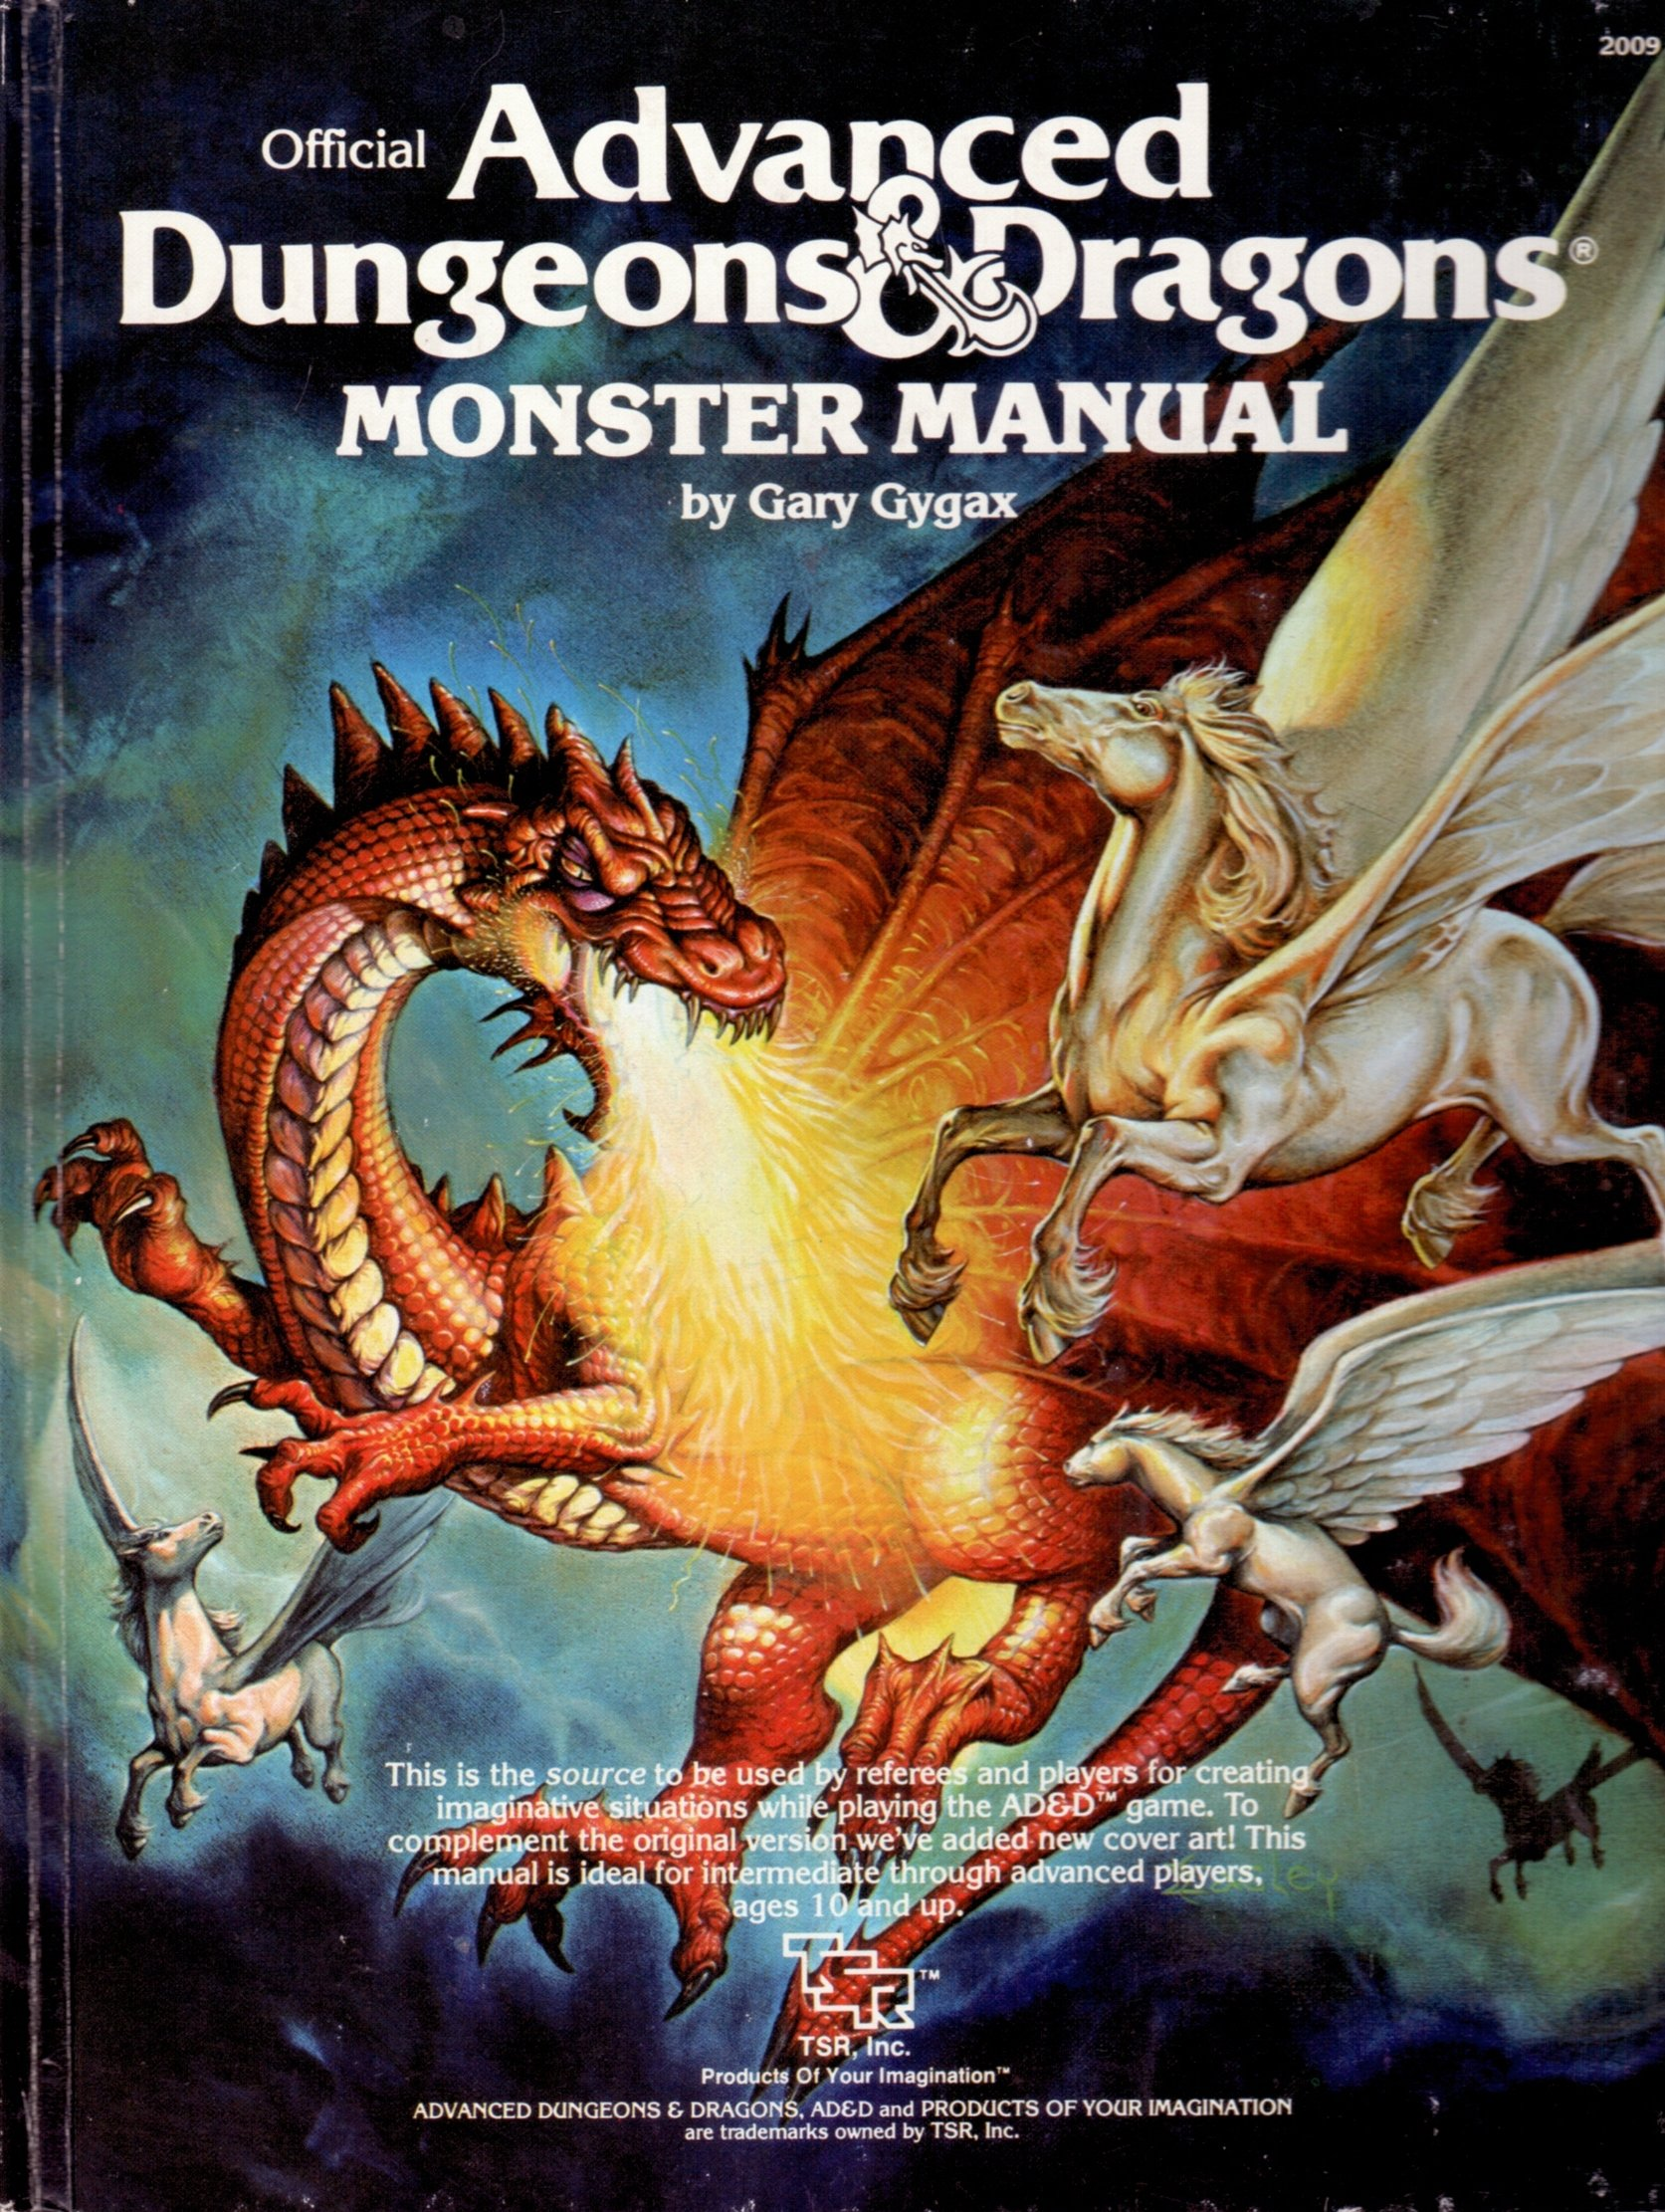 Advanced Dungeons & Dragons Monster Manual, 4th Edition: Gary Gygax:  Amazon.com: Books